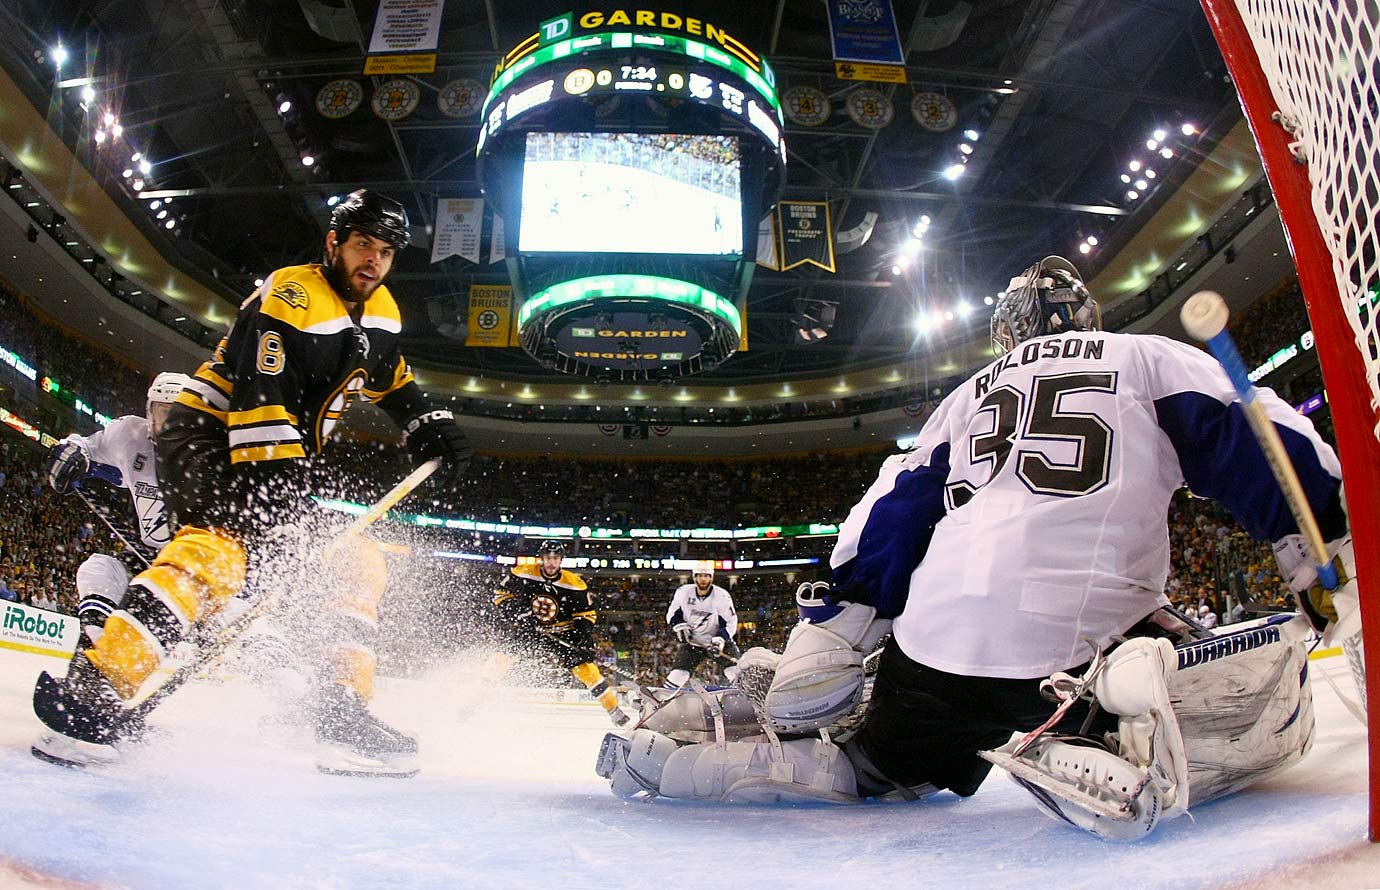 The Lightning battled back from deficits of two-games-to-one and three-games-to-two, forcing Game 7 with a rally—Vincent Lecavalier, Martin St. Louis and Brad Richards totaled three goals and eight points—and a gutty defensive effort in a 5-4 win. No penalties were called during the finale in Boston as goalies Tim Thomas of the Bruins and Dwayne Roloson of the Lightning dueled save for save. Nathan Horton gave the B's the 1-0 win by scoring with 7:33 left in the third period.